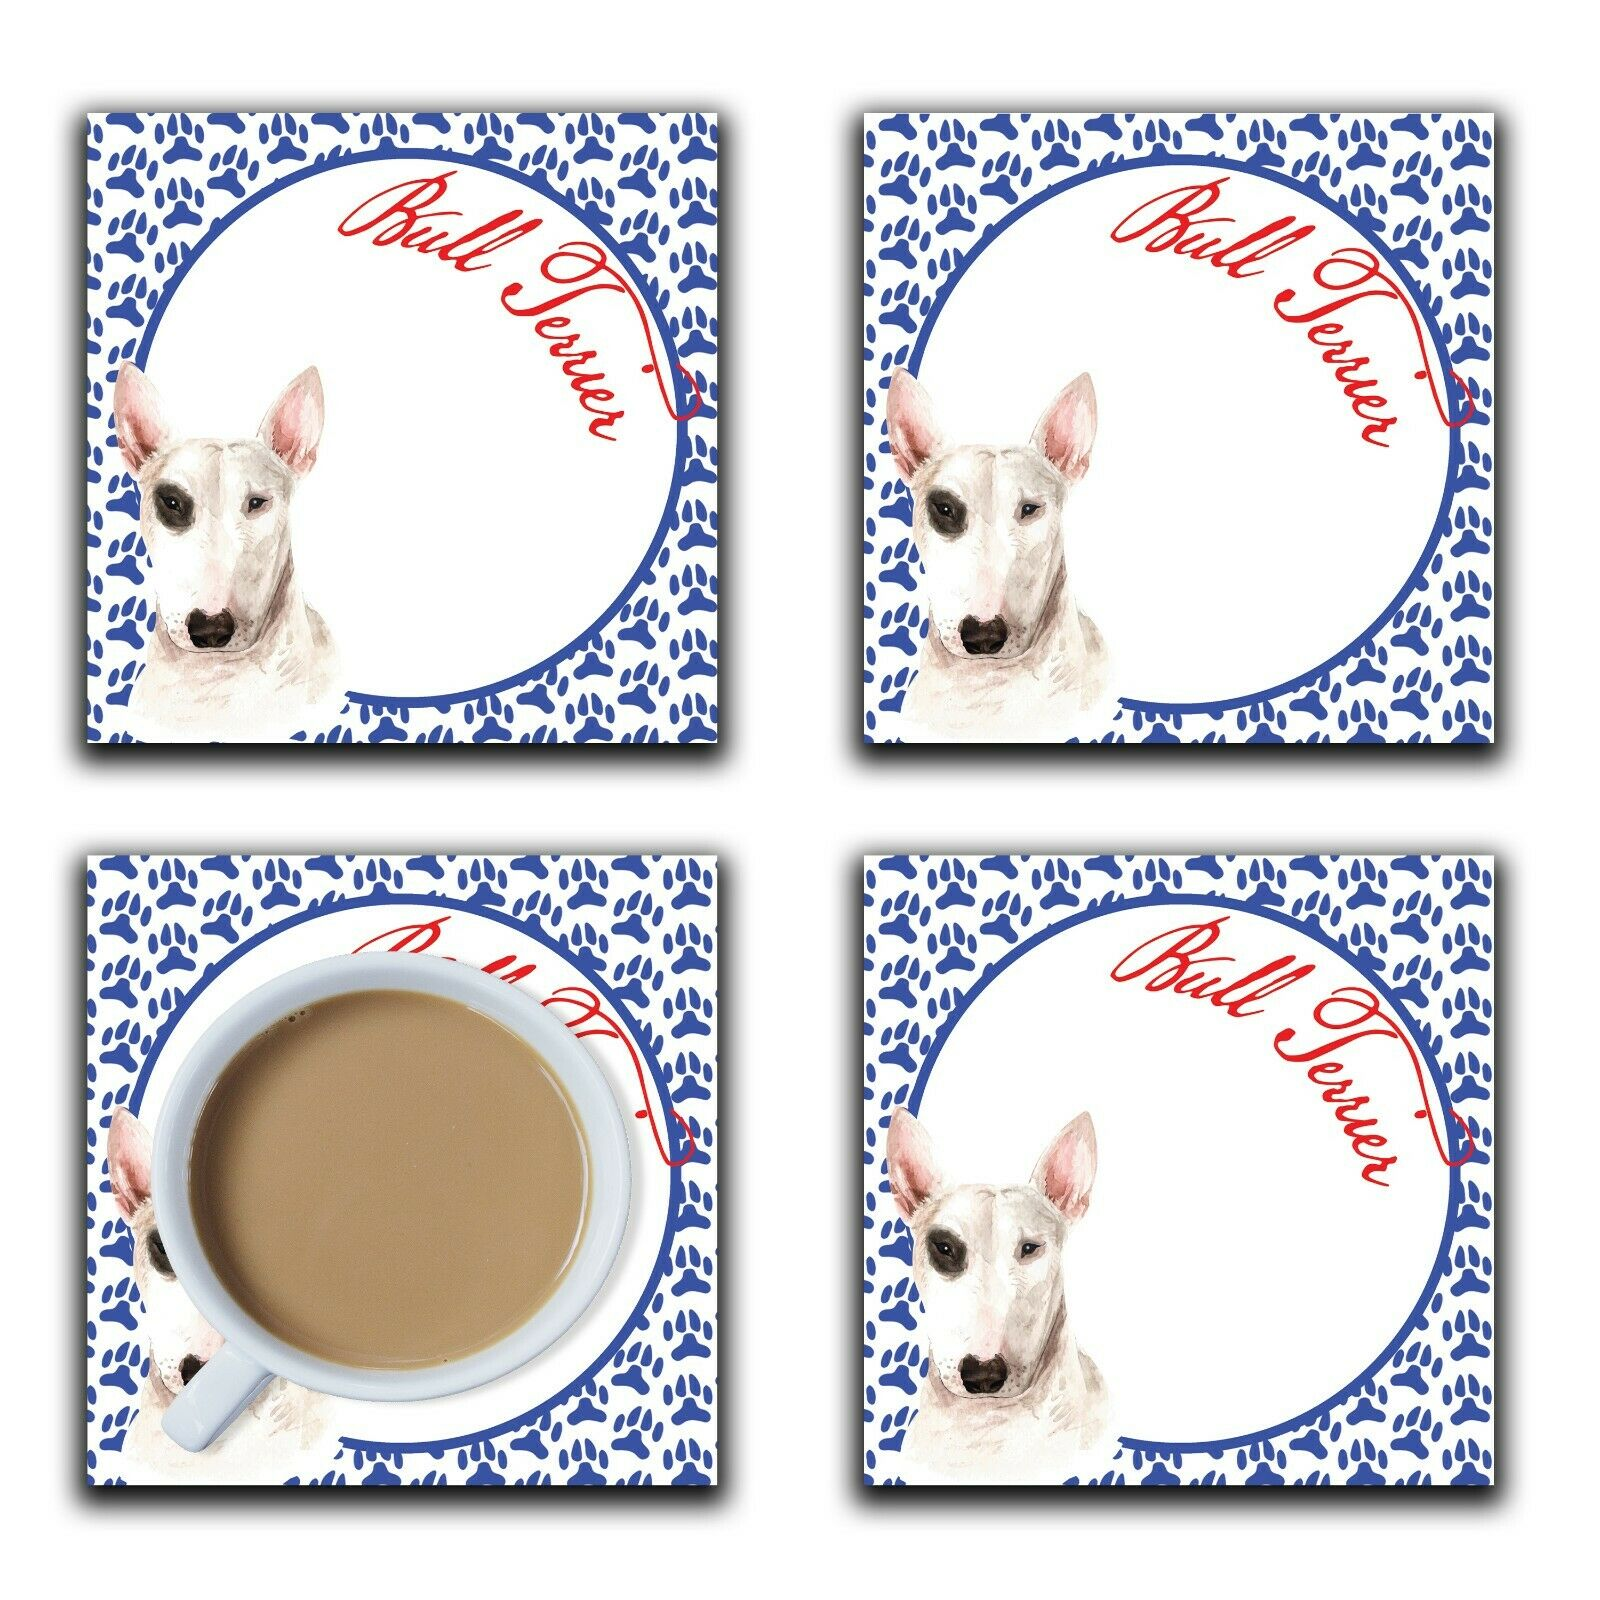 Embossi Printed Bull Terrier, wood or ceramic tile, set of 4 Dog Coasters